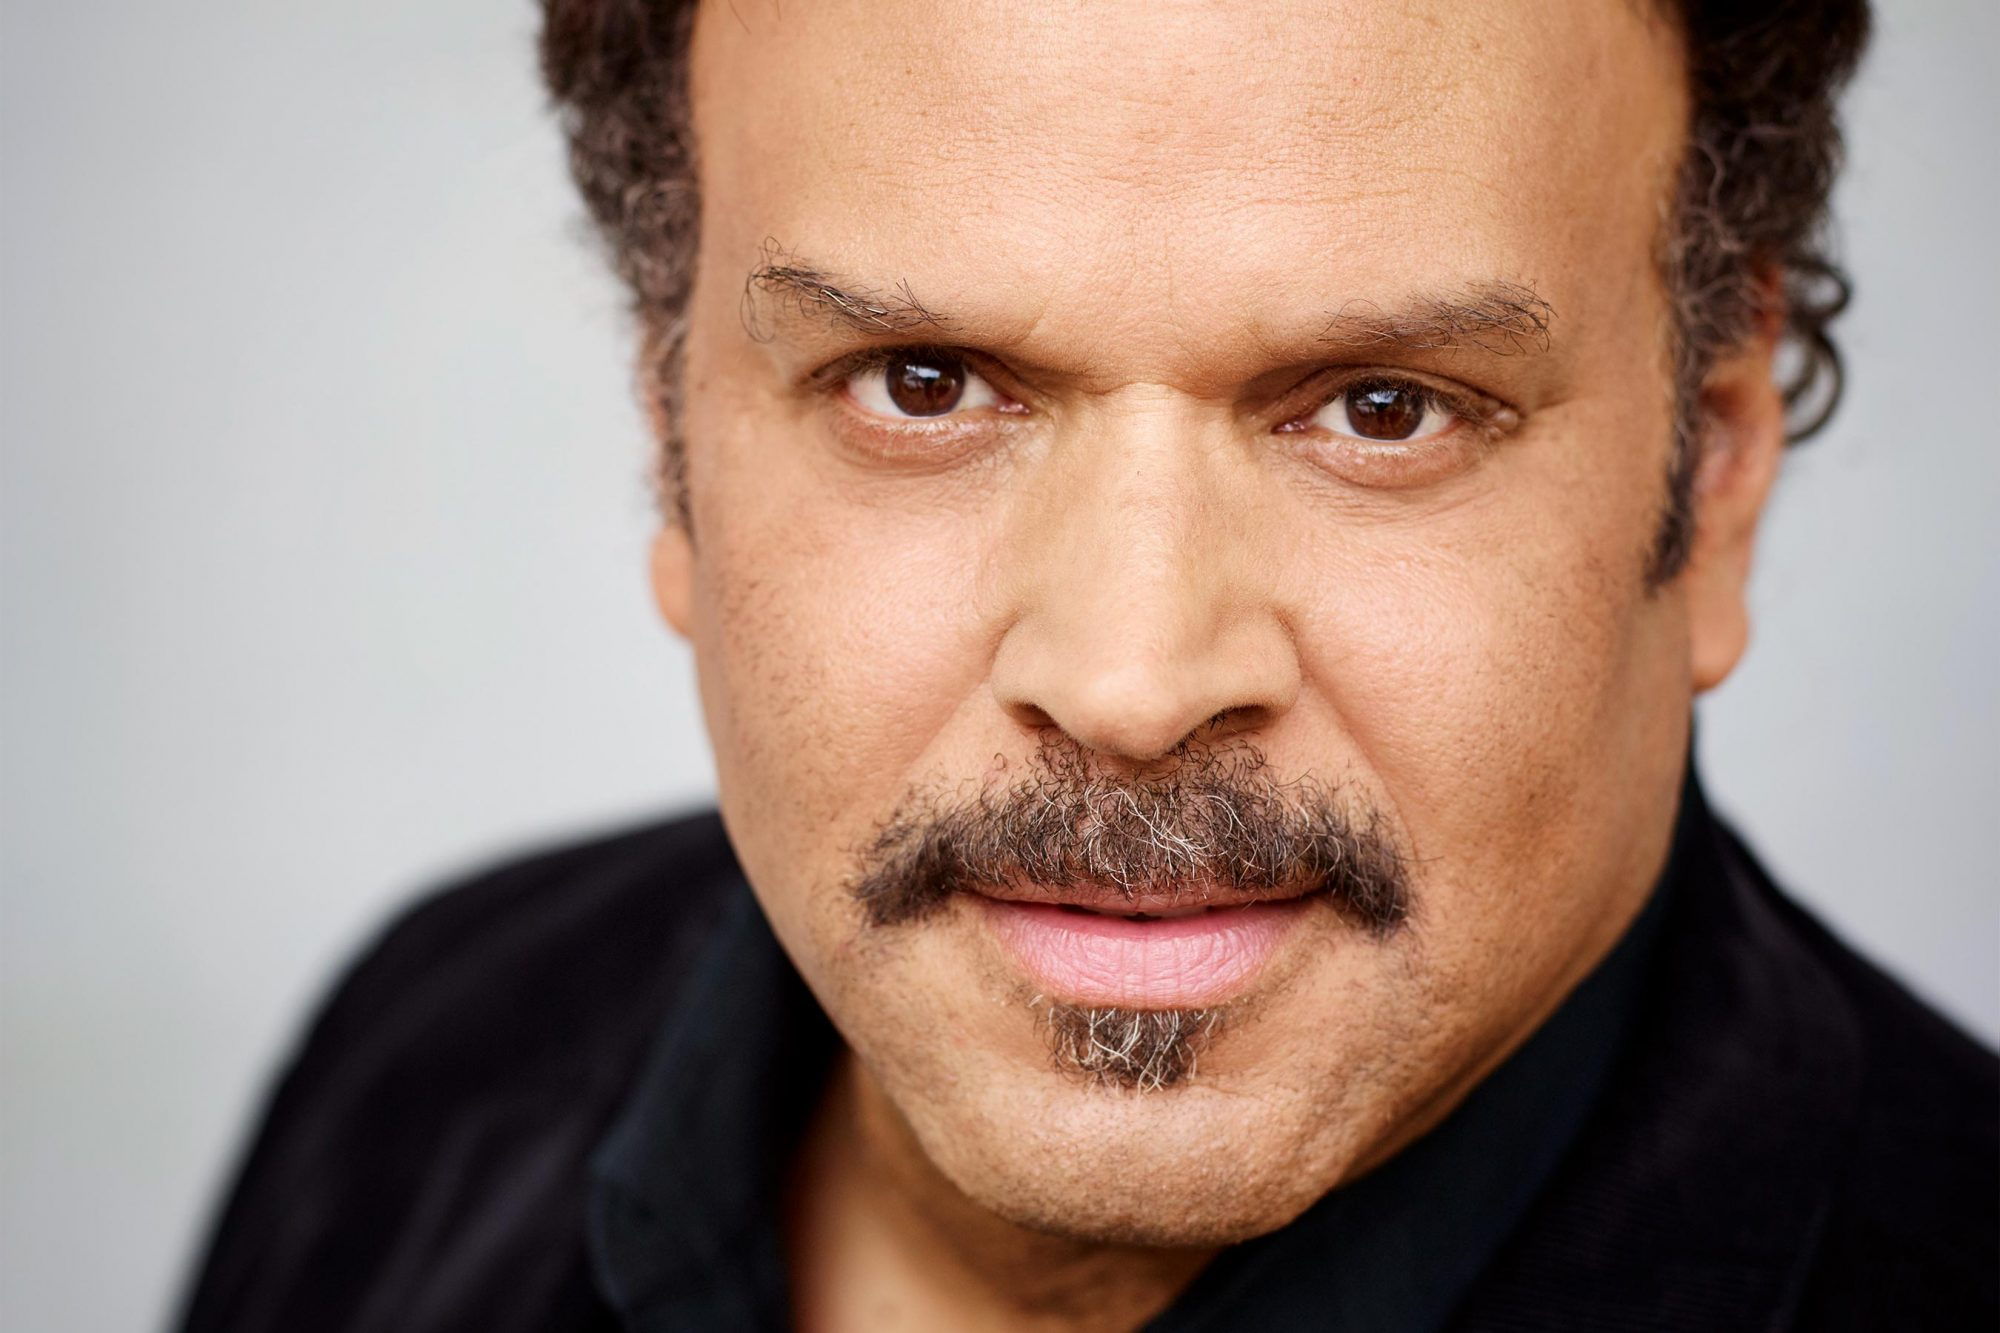 Neal Shusterman author photo, american writer of young-adult fiction CR: Gaby Gerster